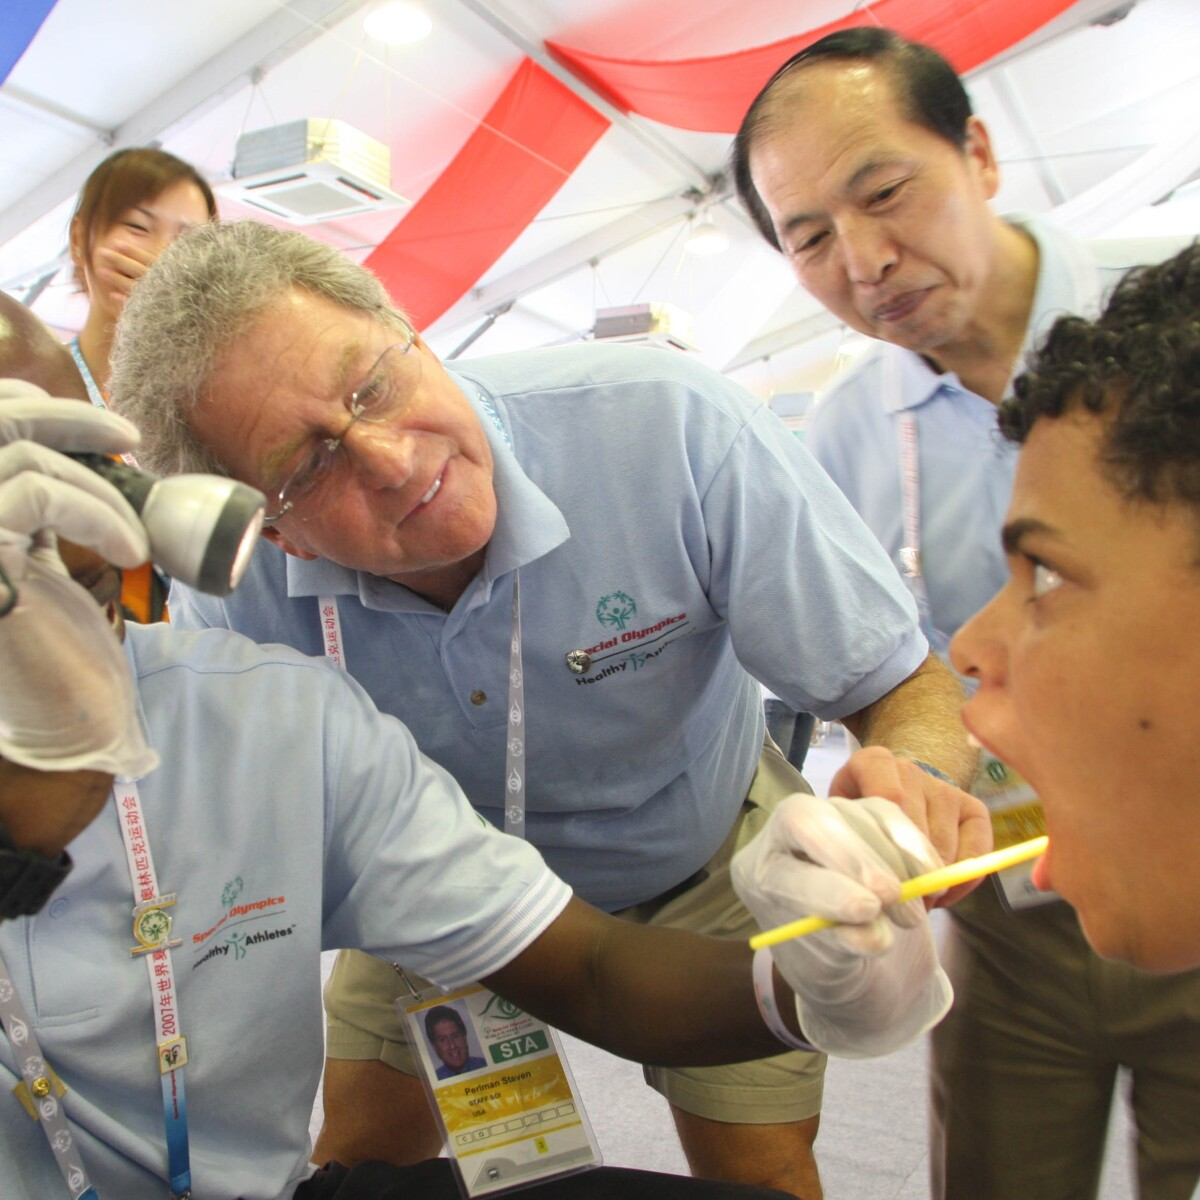 Healthy Athletes Program Founder, Dentist Dr. Steve Perlman, Performs a Special Smiles Dental Examination with Others at the 2007 World Summer Games in Shanghai, China